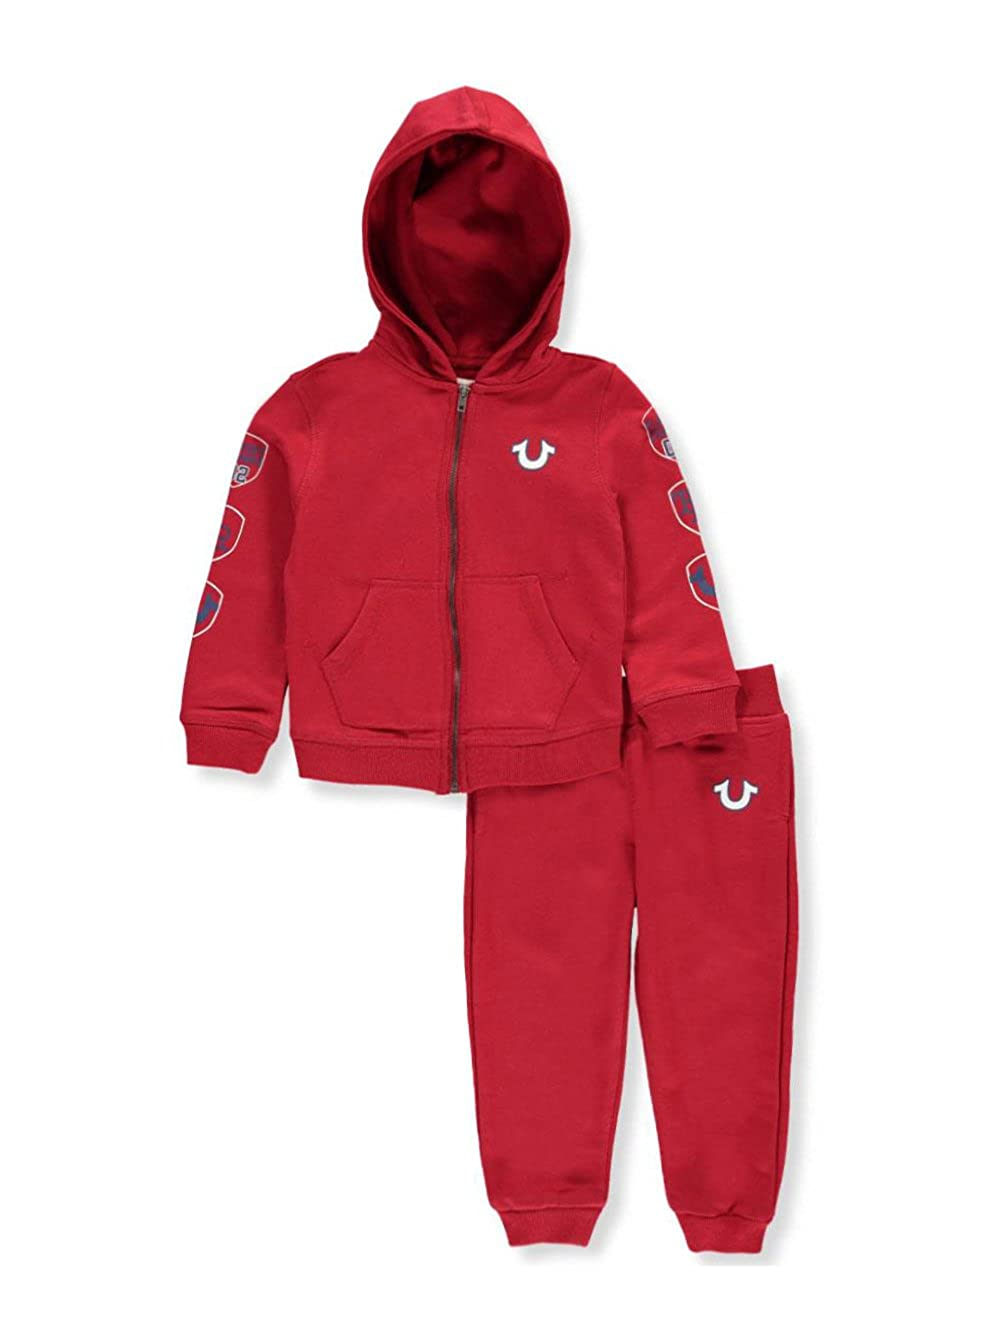 f92319e94 Amazon.com: True Religion Baby and Toddler Boy's Hoodie & Sweatpants Set:  Clothing